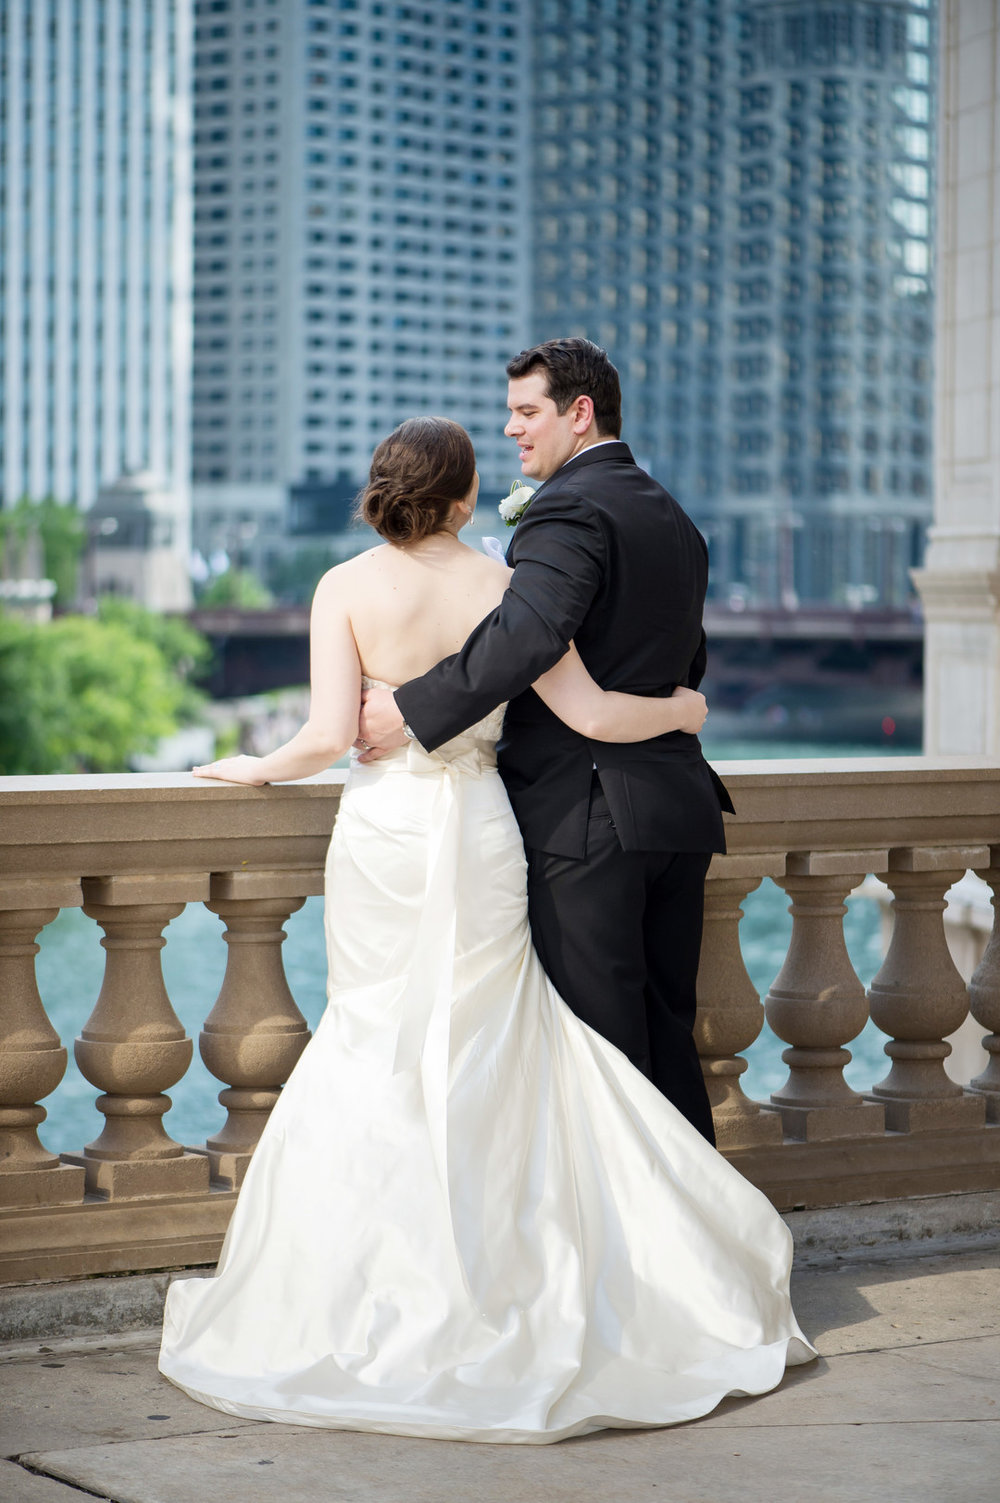 Bride and Groom Portrait Chicago Wedding Julia Franzosa Photography